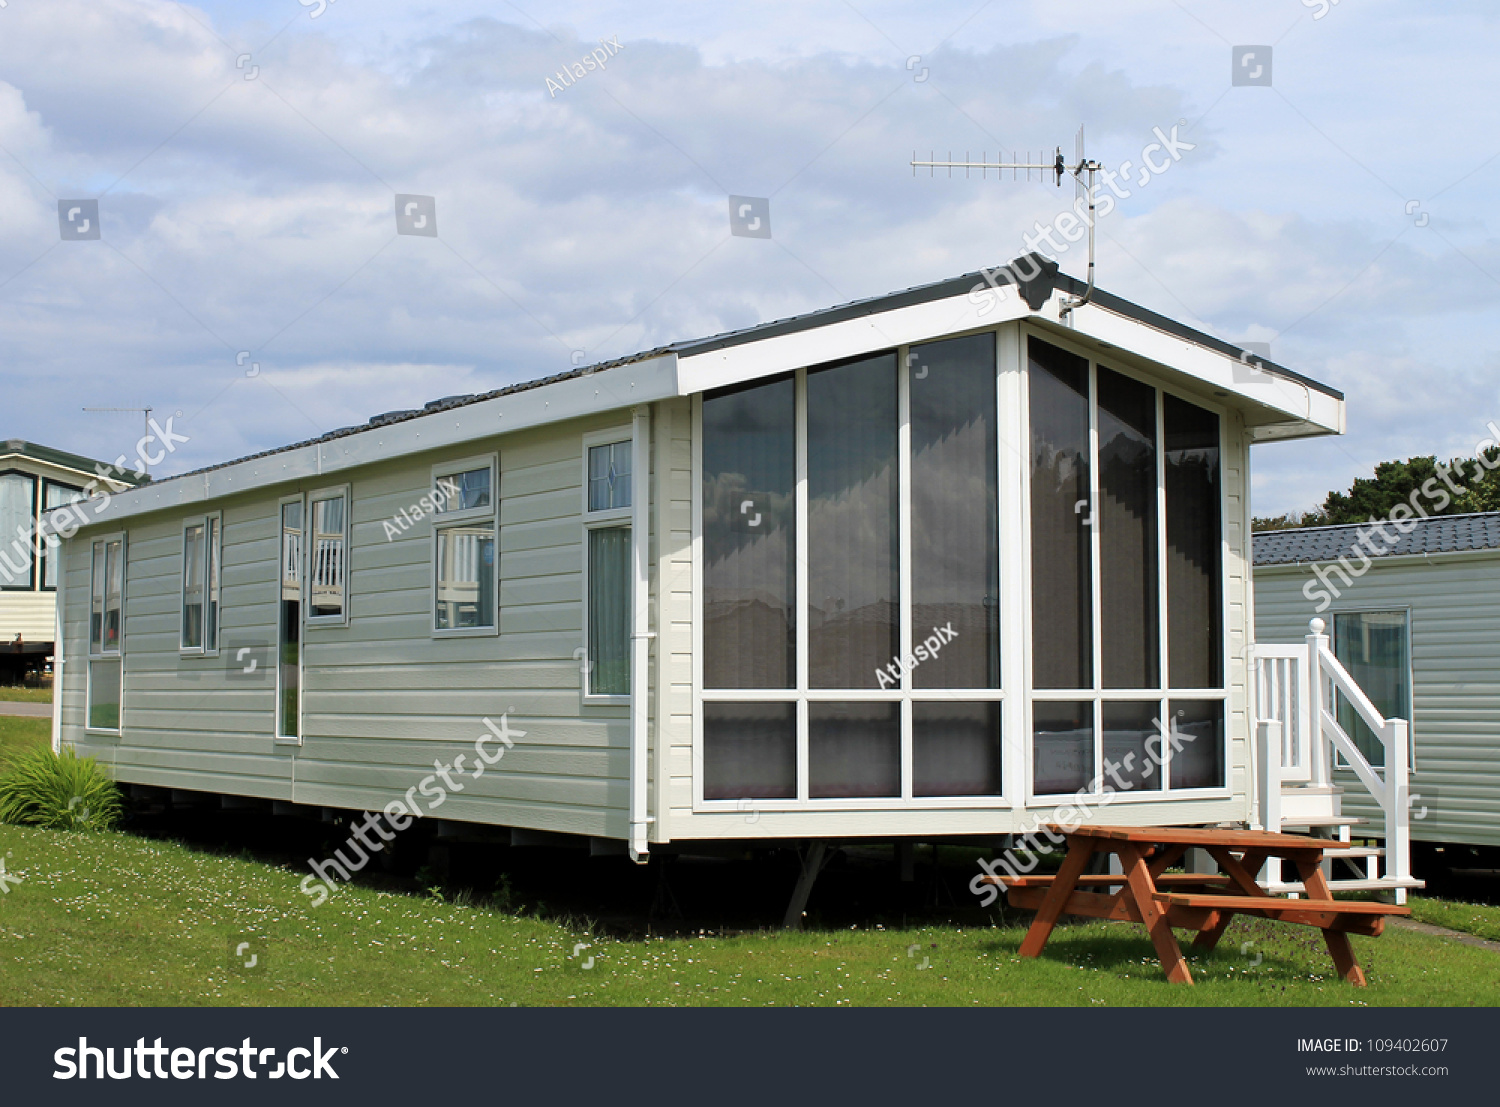 xterior Modern aravan railer Mobile Home Stock Photo 109402607 ... - ^